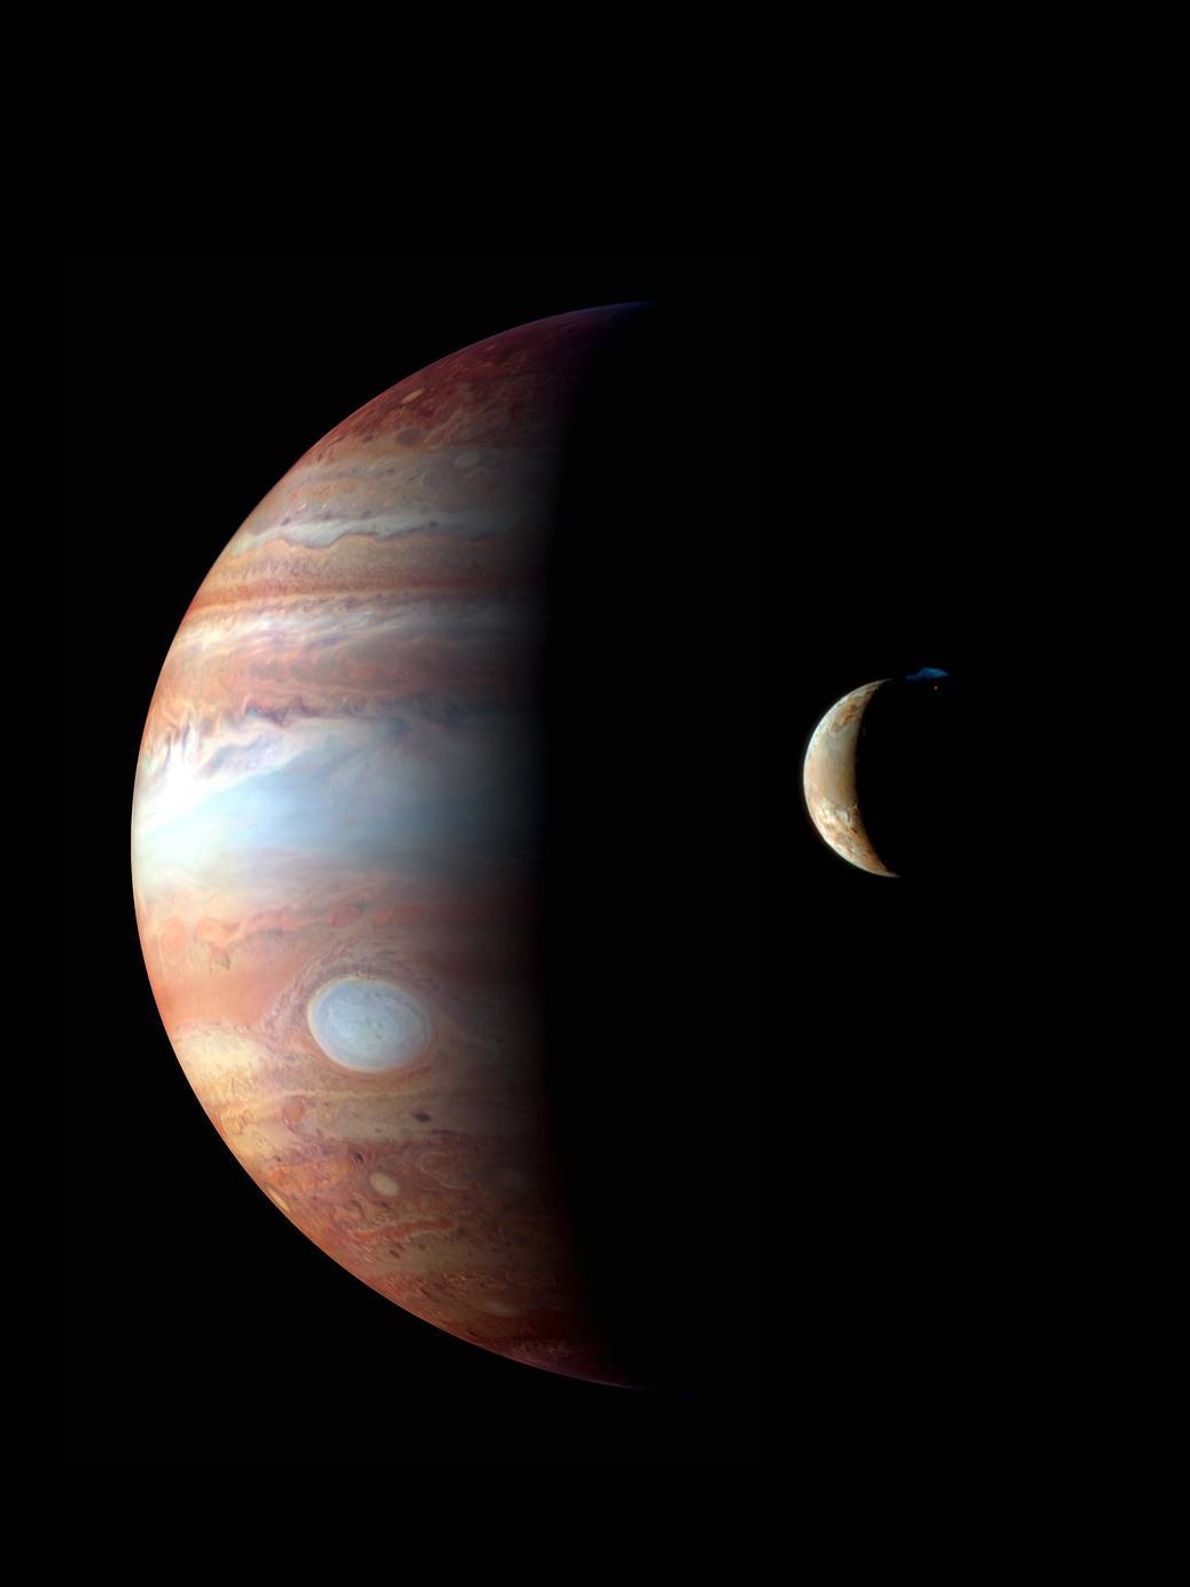 In February 2007, New Horizons passed Jupiter and its volcanically active moon Io. In this montage, ...